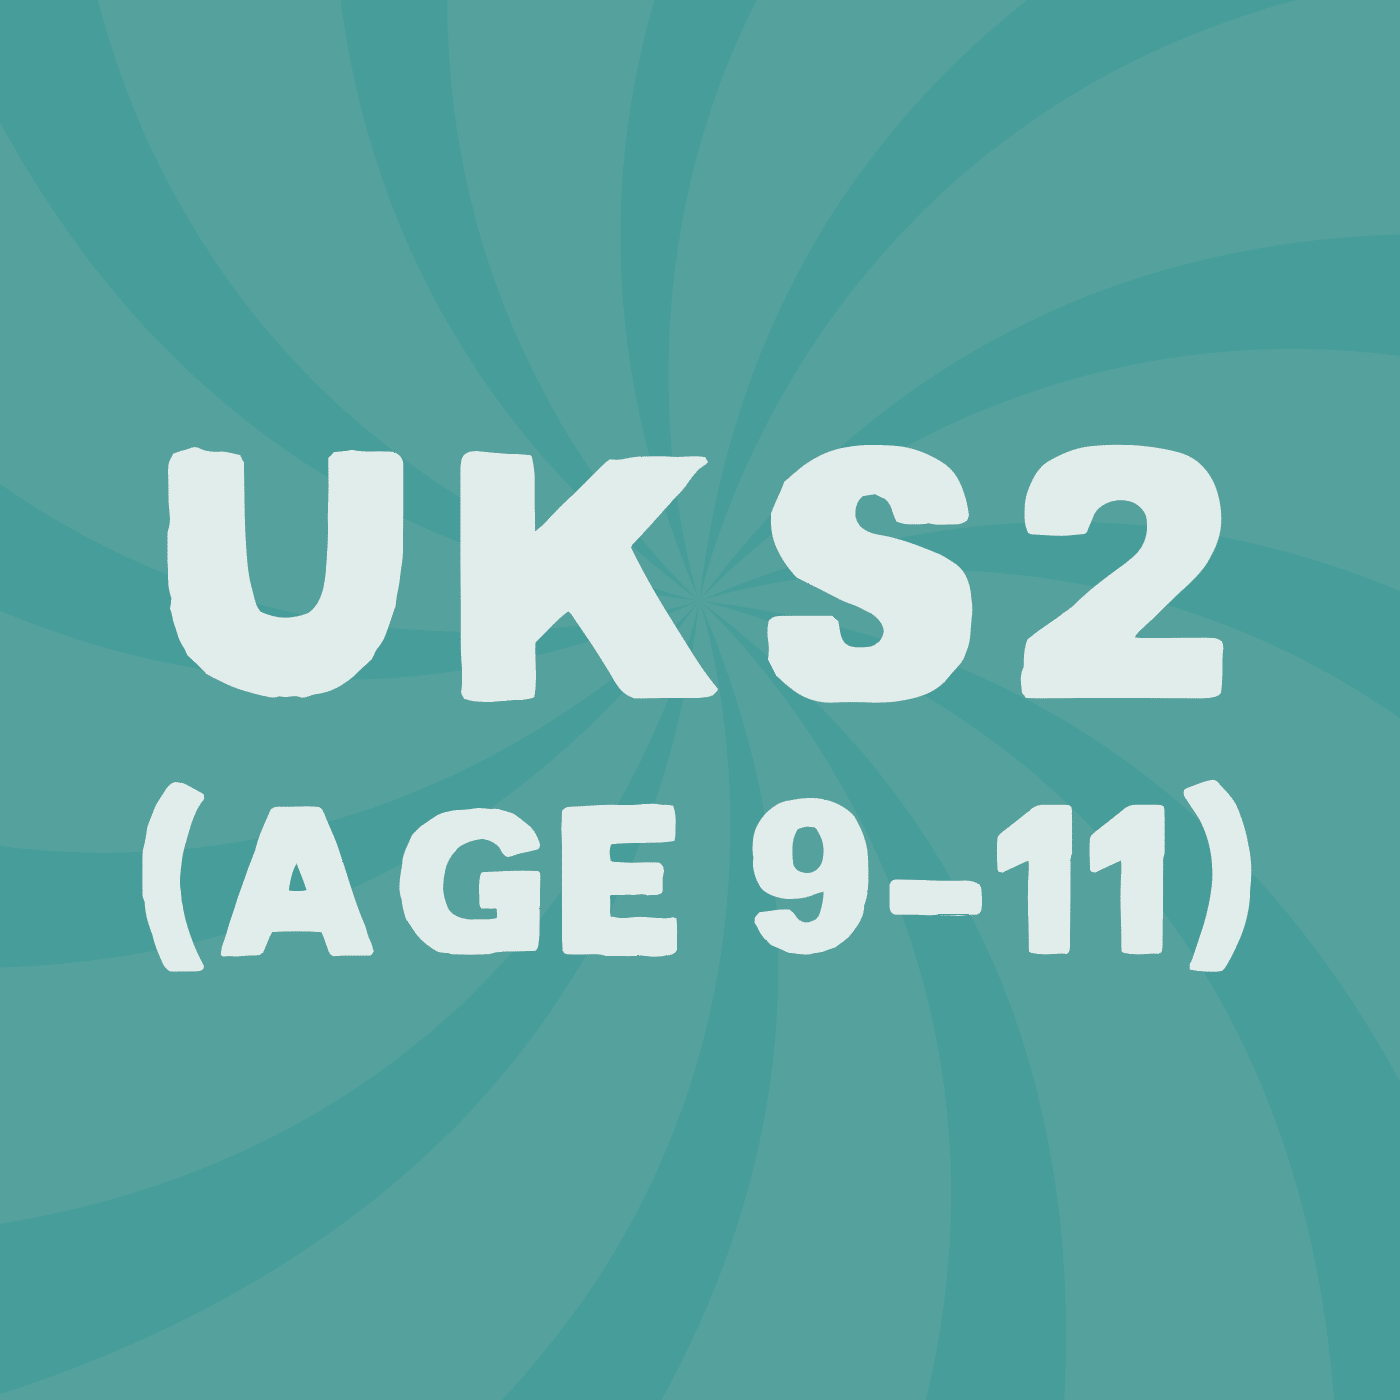 //tpet.co.uk/wp-content/uploads/2021/01/home-learning-uks2-button.png